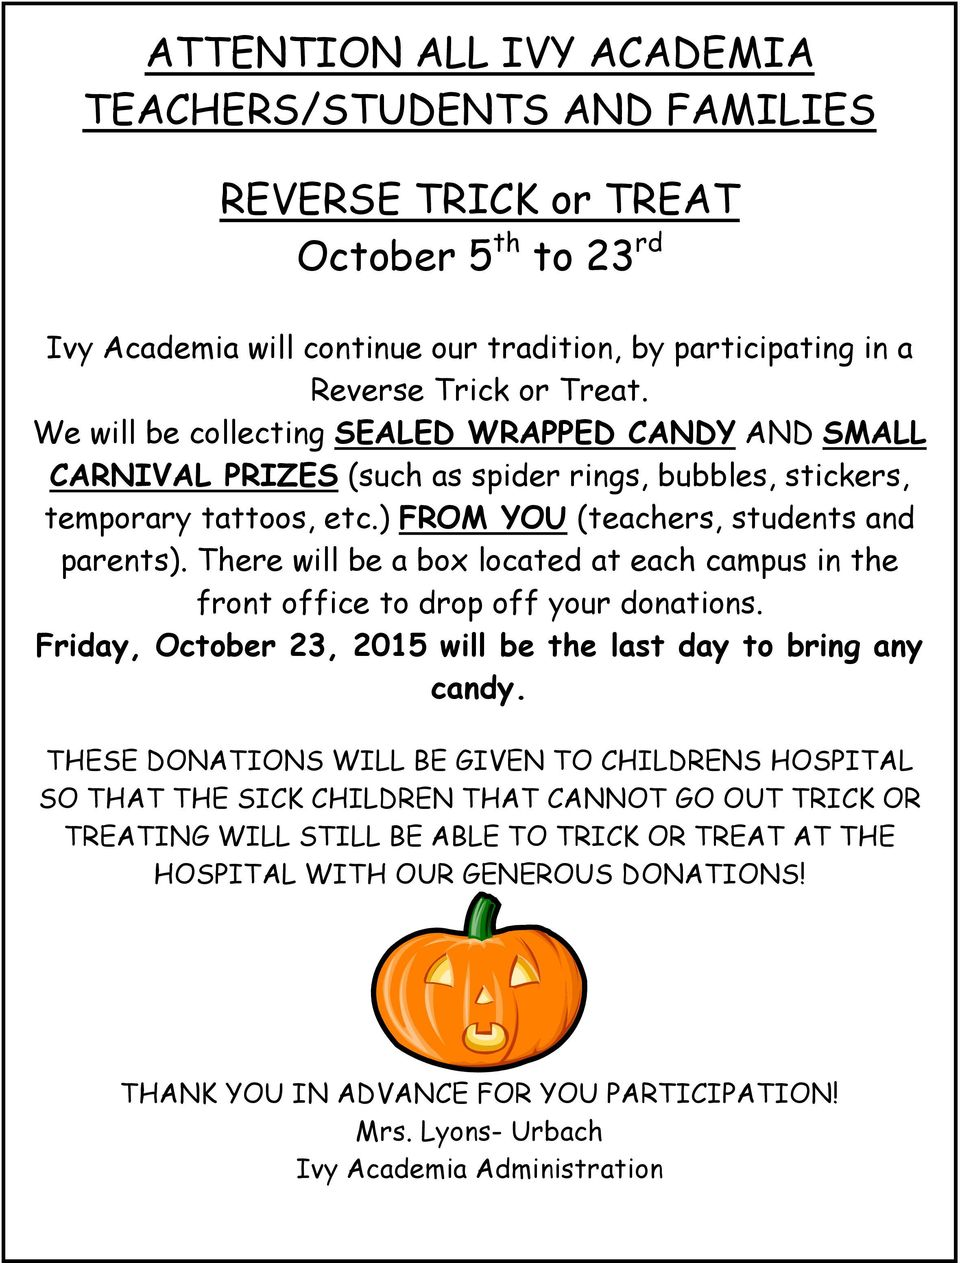 There will be a box located at each campus in the front office to drop off your donations. Friday, October 23, 2015 will be the last day to bring any candy.